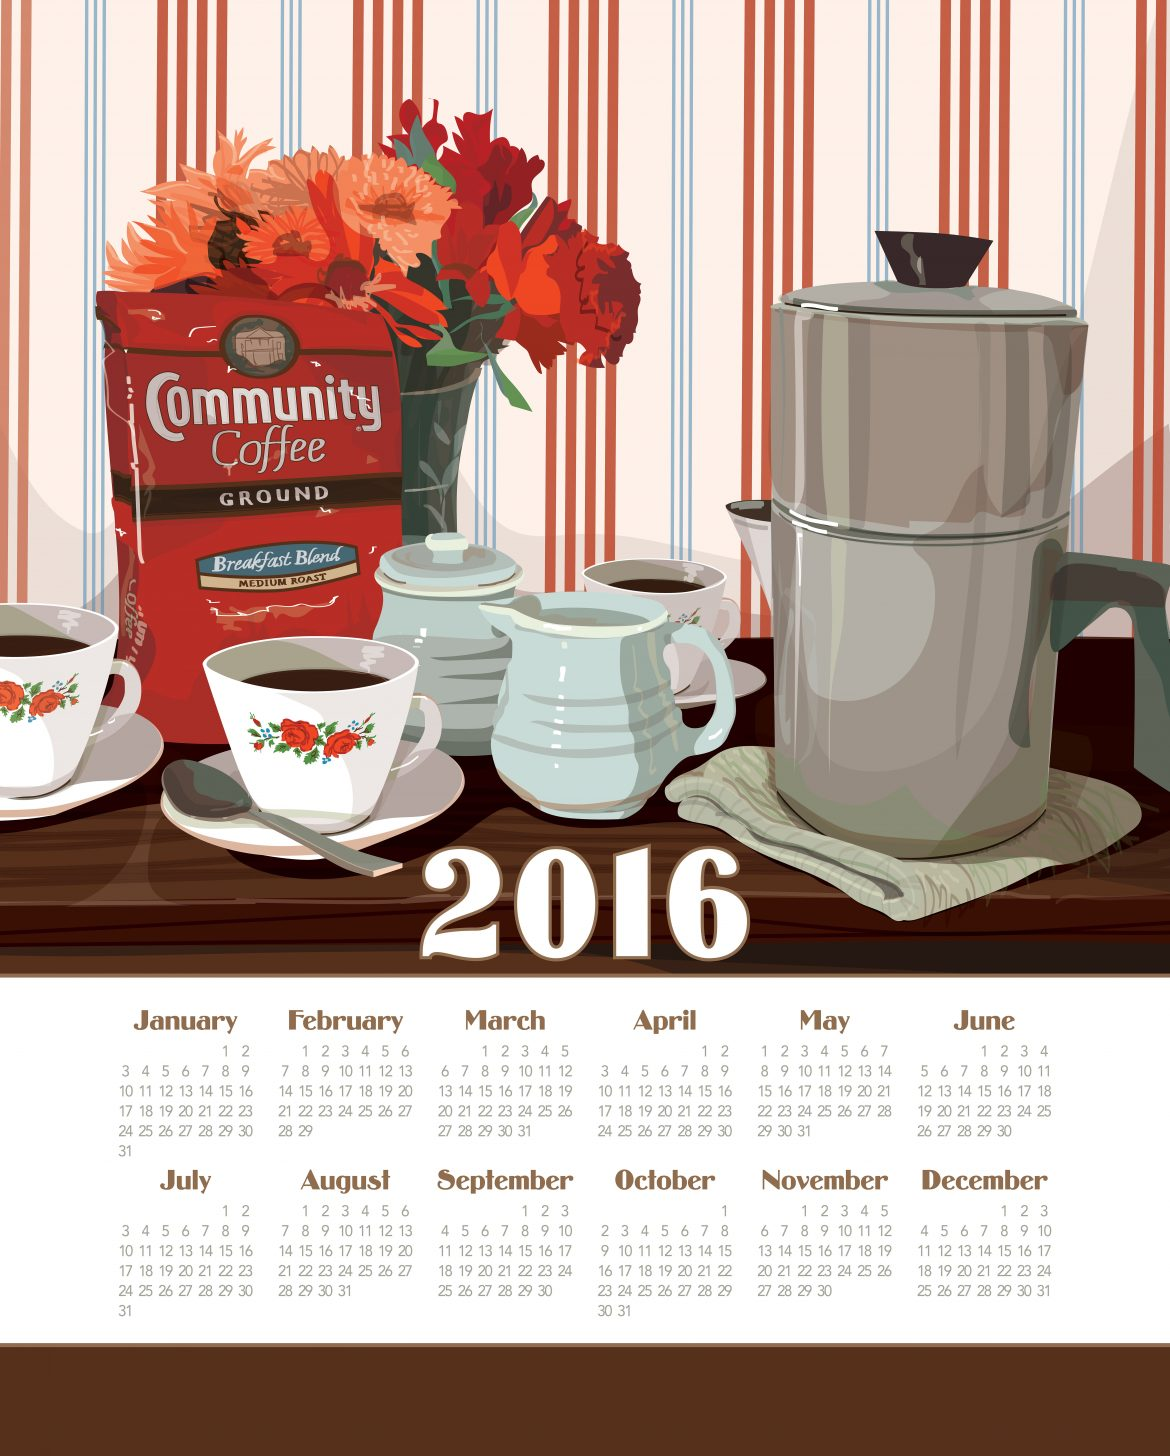 richard creative shreveport calendar towel